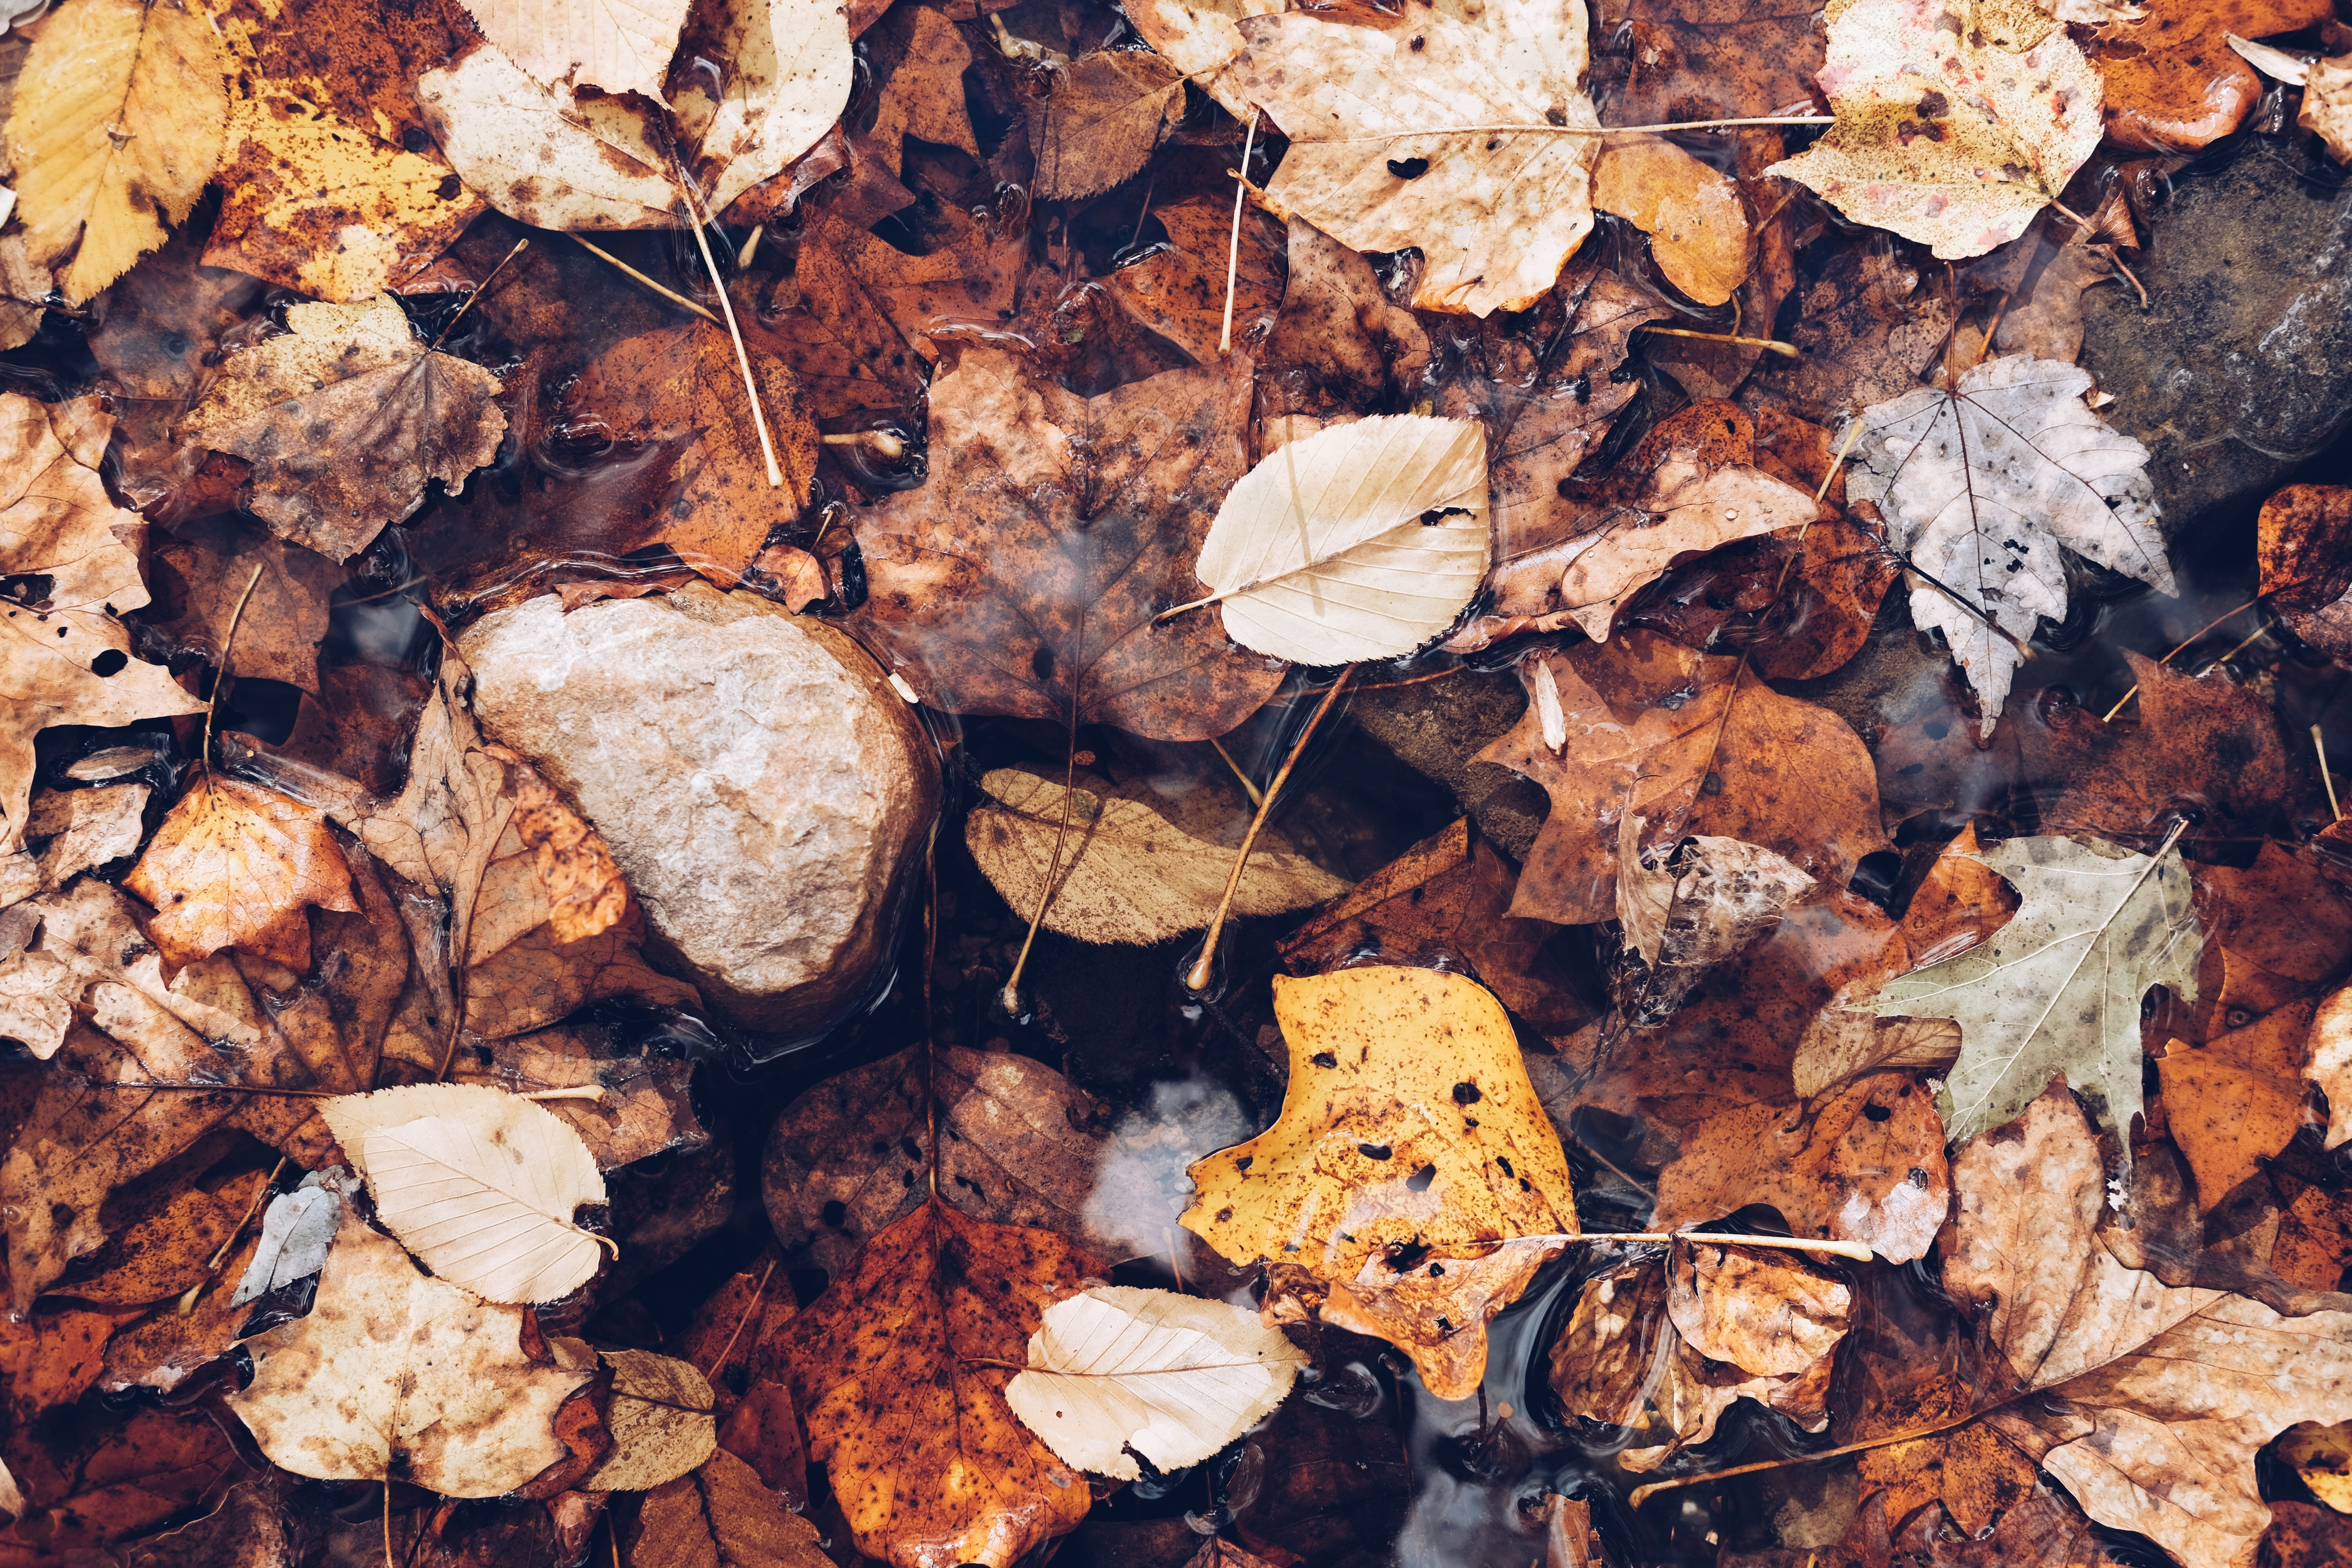 A closeup shot of a pile of leaves on the ground on top of rainwater